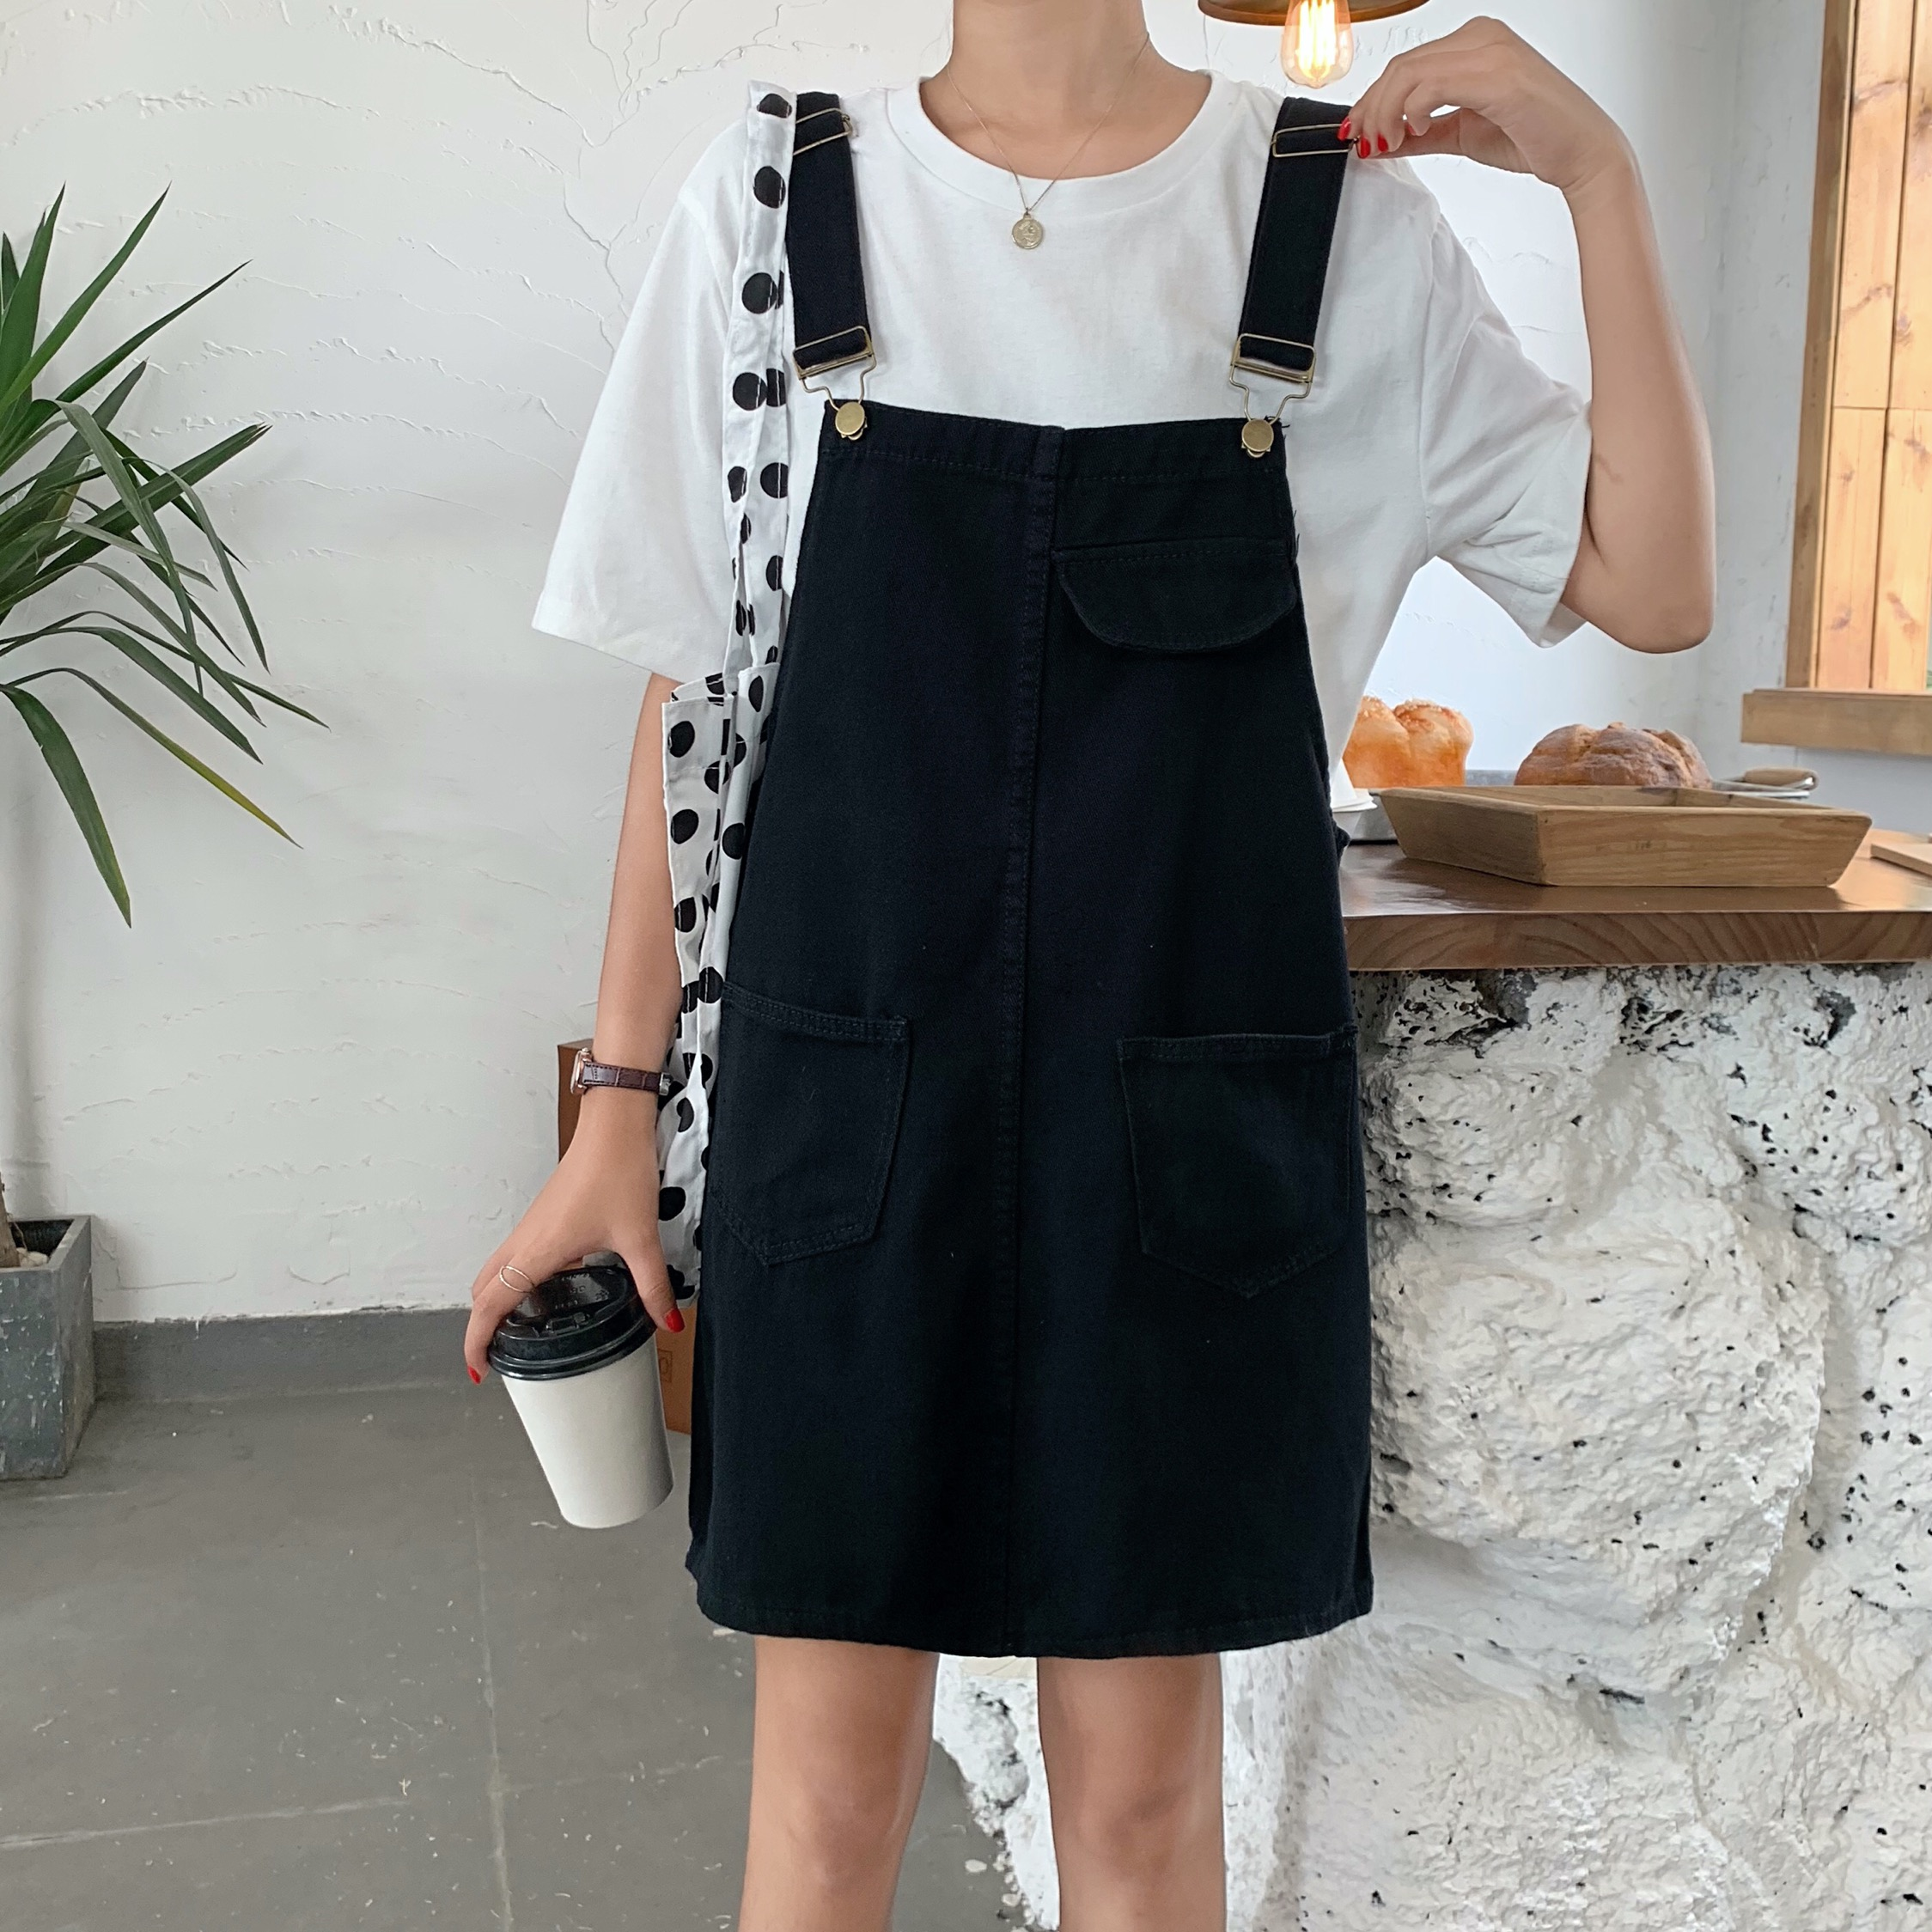 Women Streetwear Straight Loose Jeans Skirt With Suspenders Womens Casual Denim Skirt Black White Preppy Style Overalls Skirts